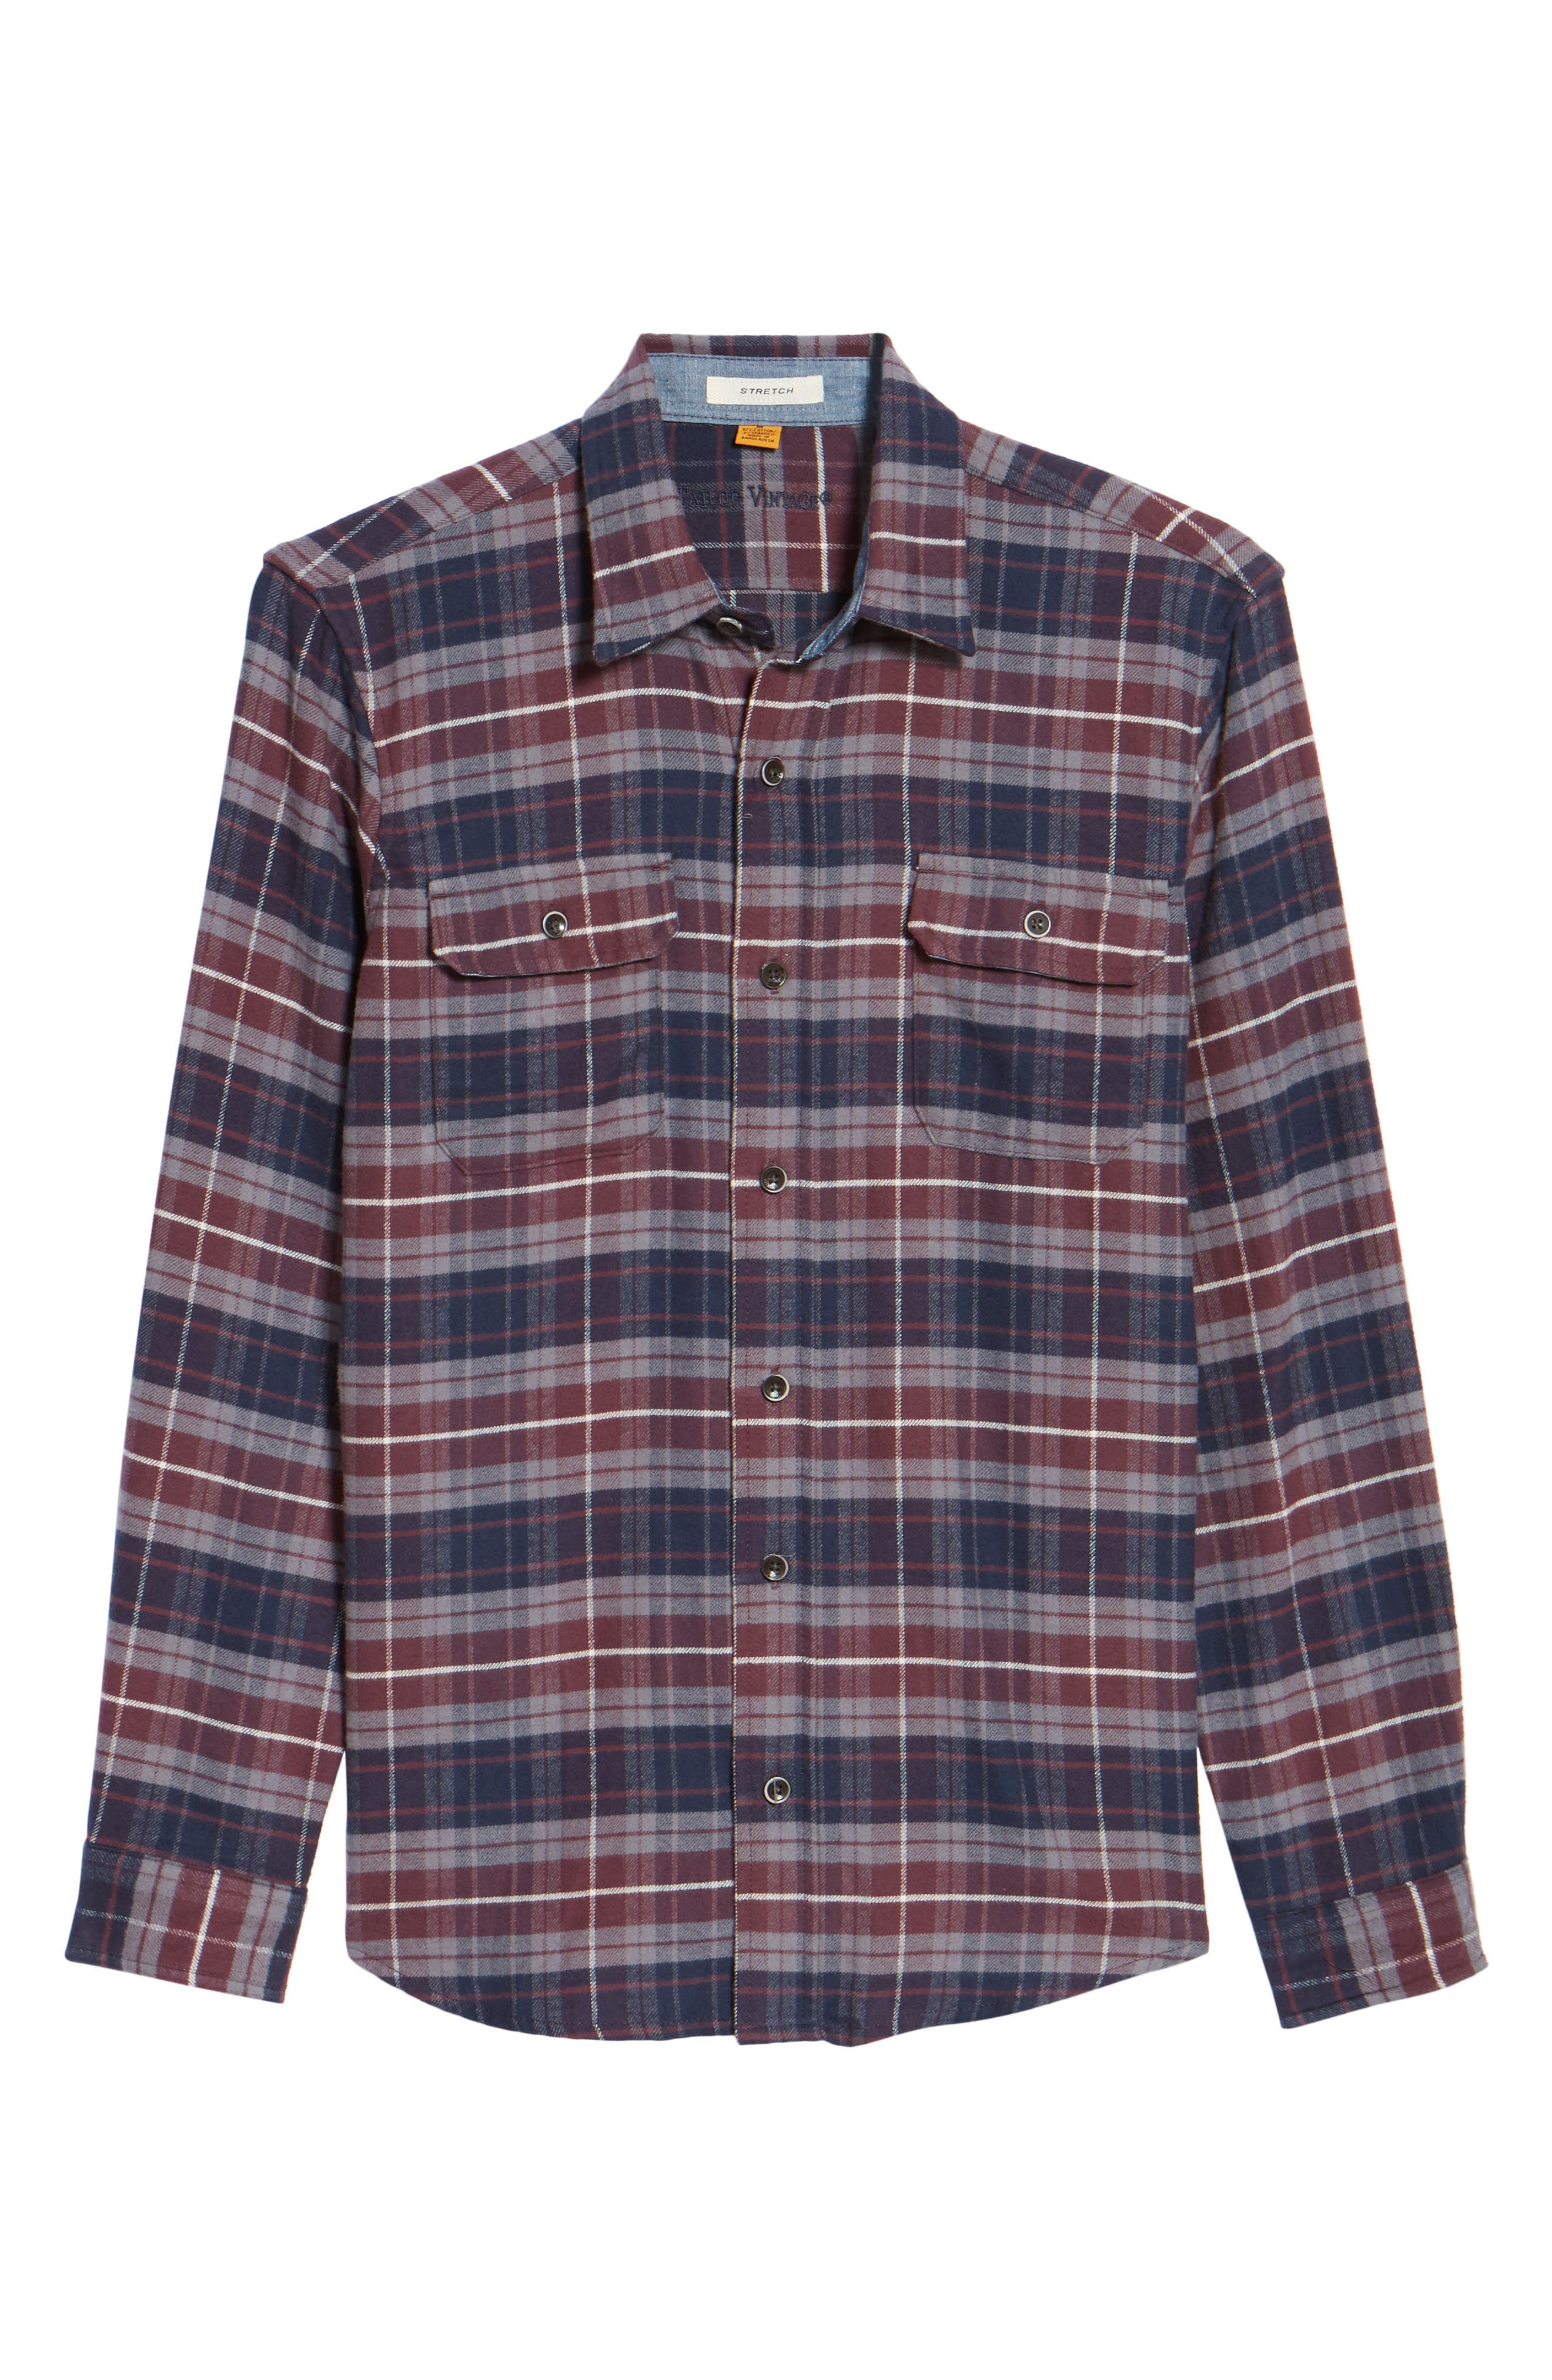 Plaid Flannel Sport Shirt,                             Alternate thumbnail 6, color,                             510